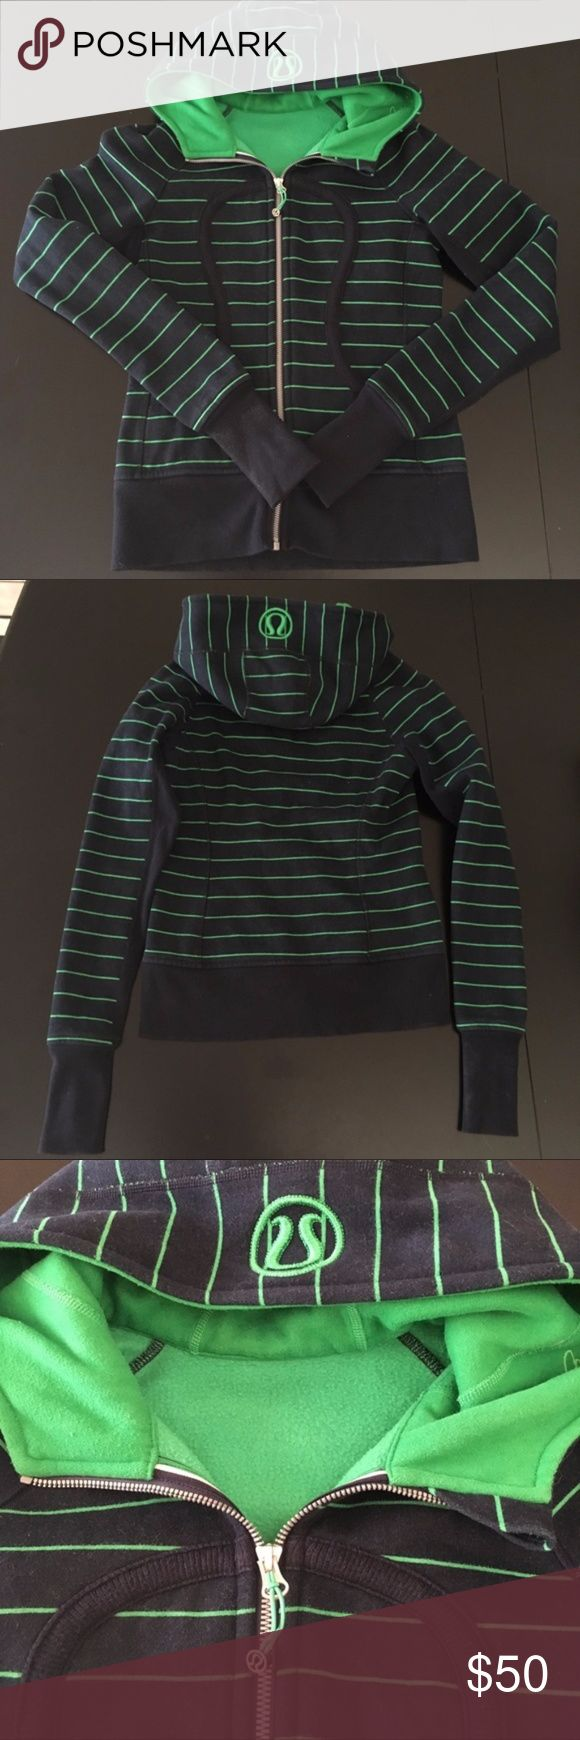 Lululemon Scuba Hoodie Lululemon Scuba Hoodie. EUC. Navy and green stripe. No flaws. NO TRADES. lululemon athletica Tops Sweatshirts & Hoodies